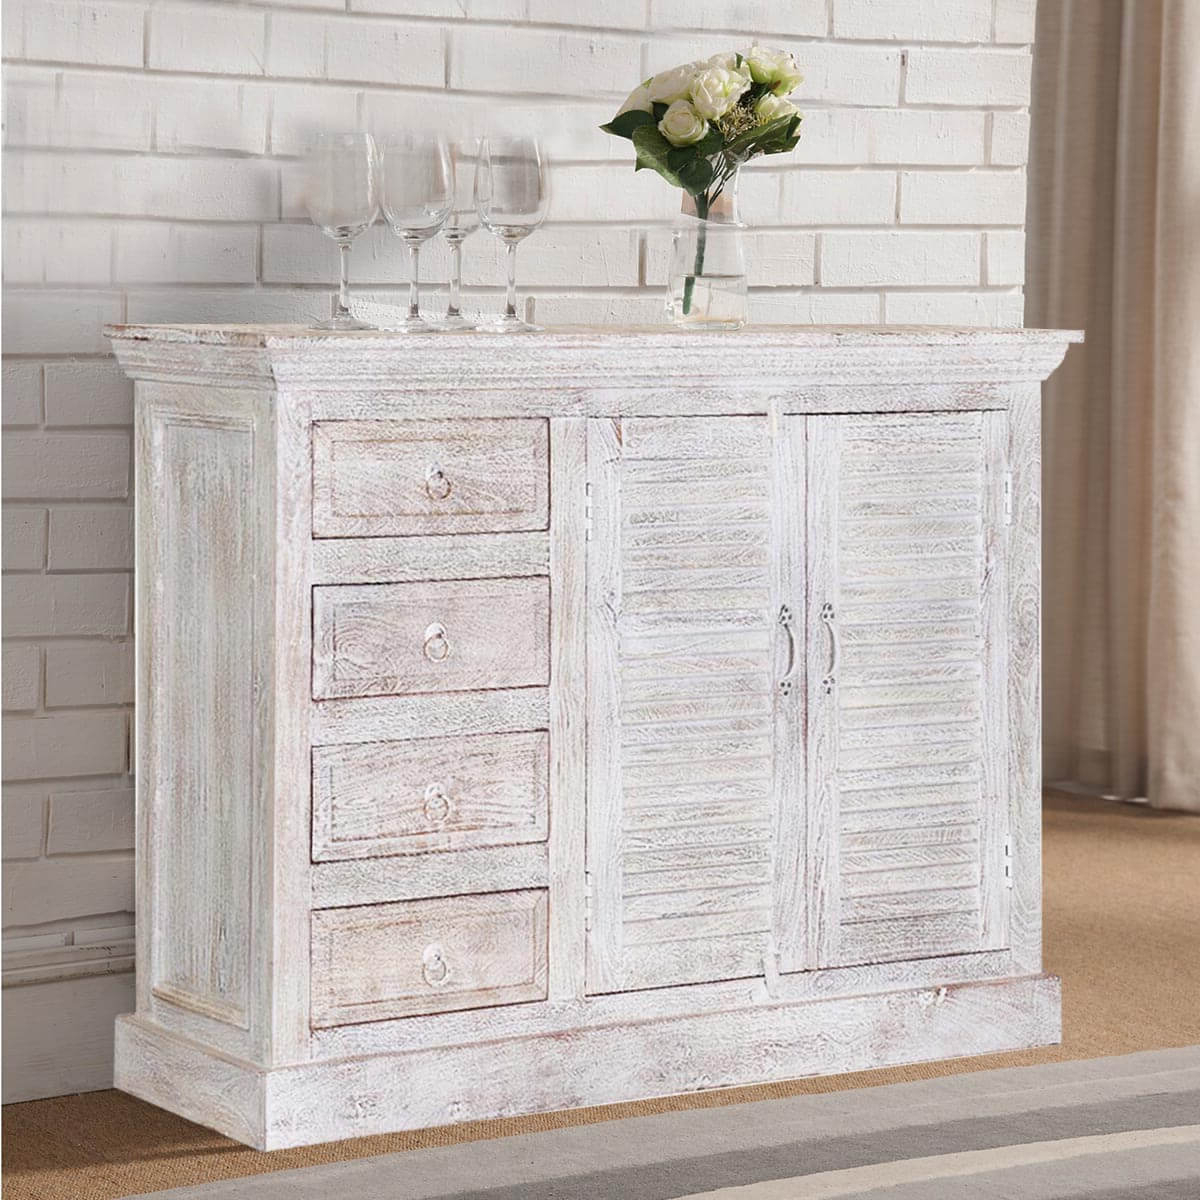 Vintage Finish 4 Door Sideboards With Favorite Ohio Rustic White Weathered Finish 2 Door 4 Drawer Sideboard (View 19 of 20)